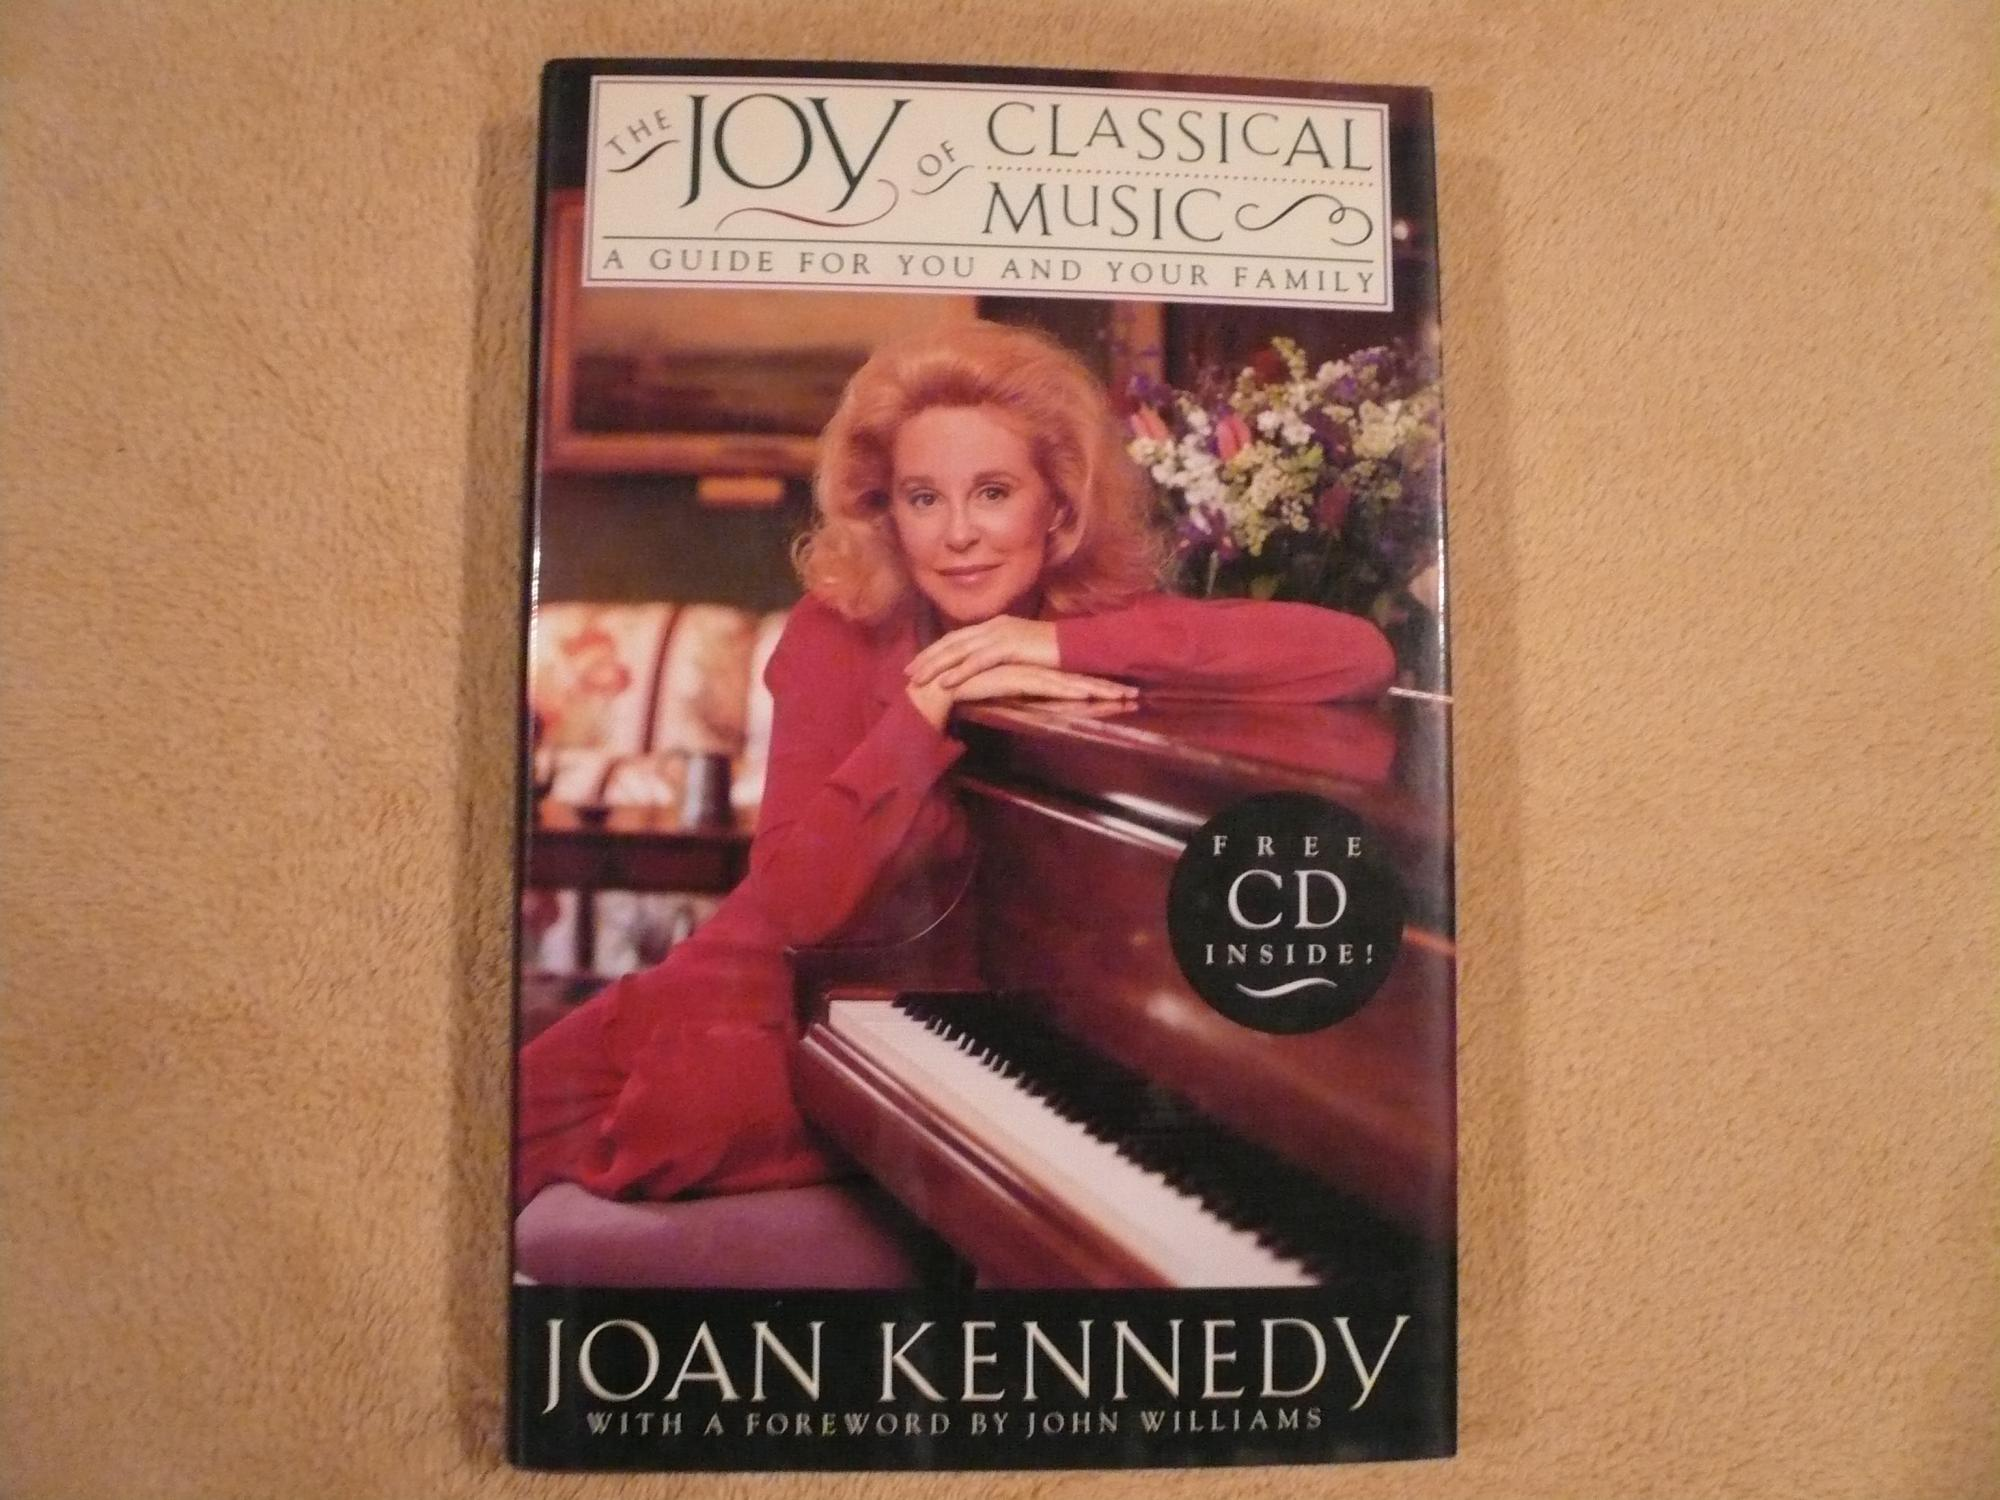 The Joy of Classical Music: A Guide for You and Your Family: CD Included